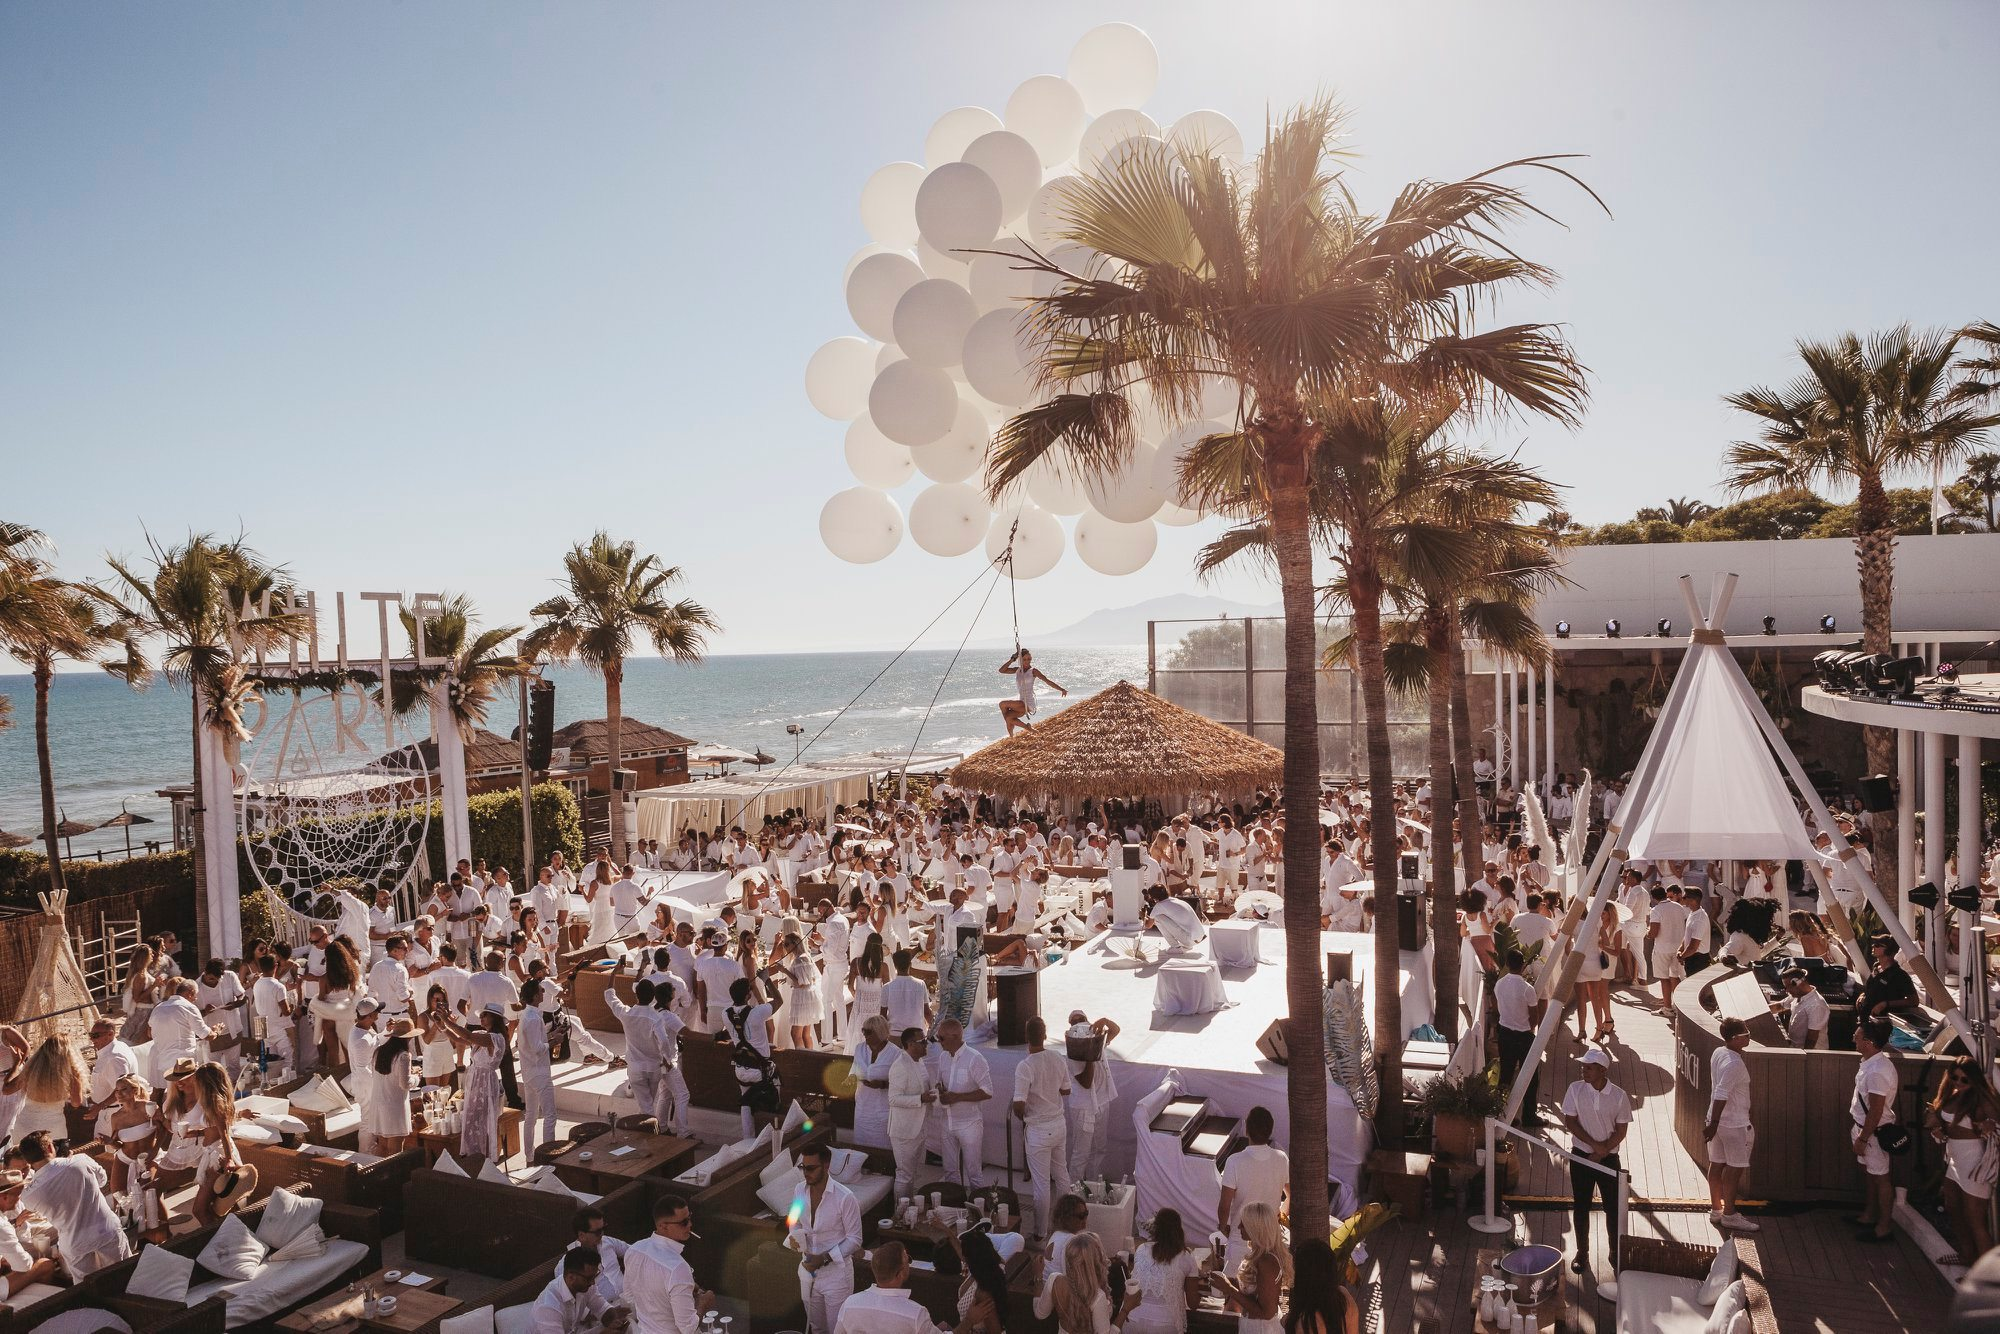 Nikki Beach White Party 2020